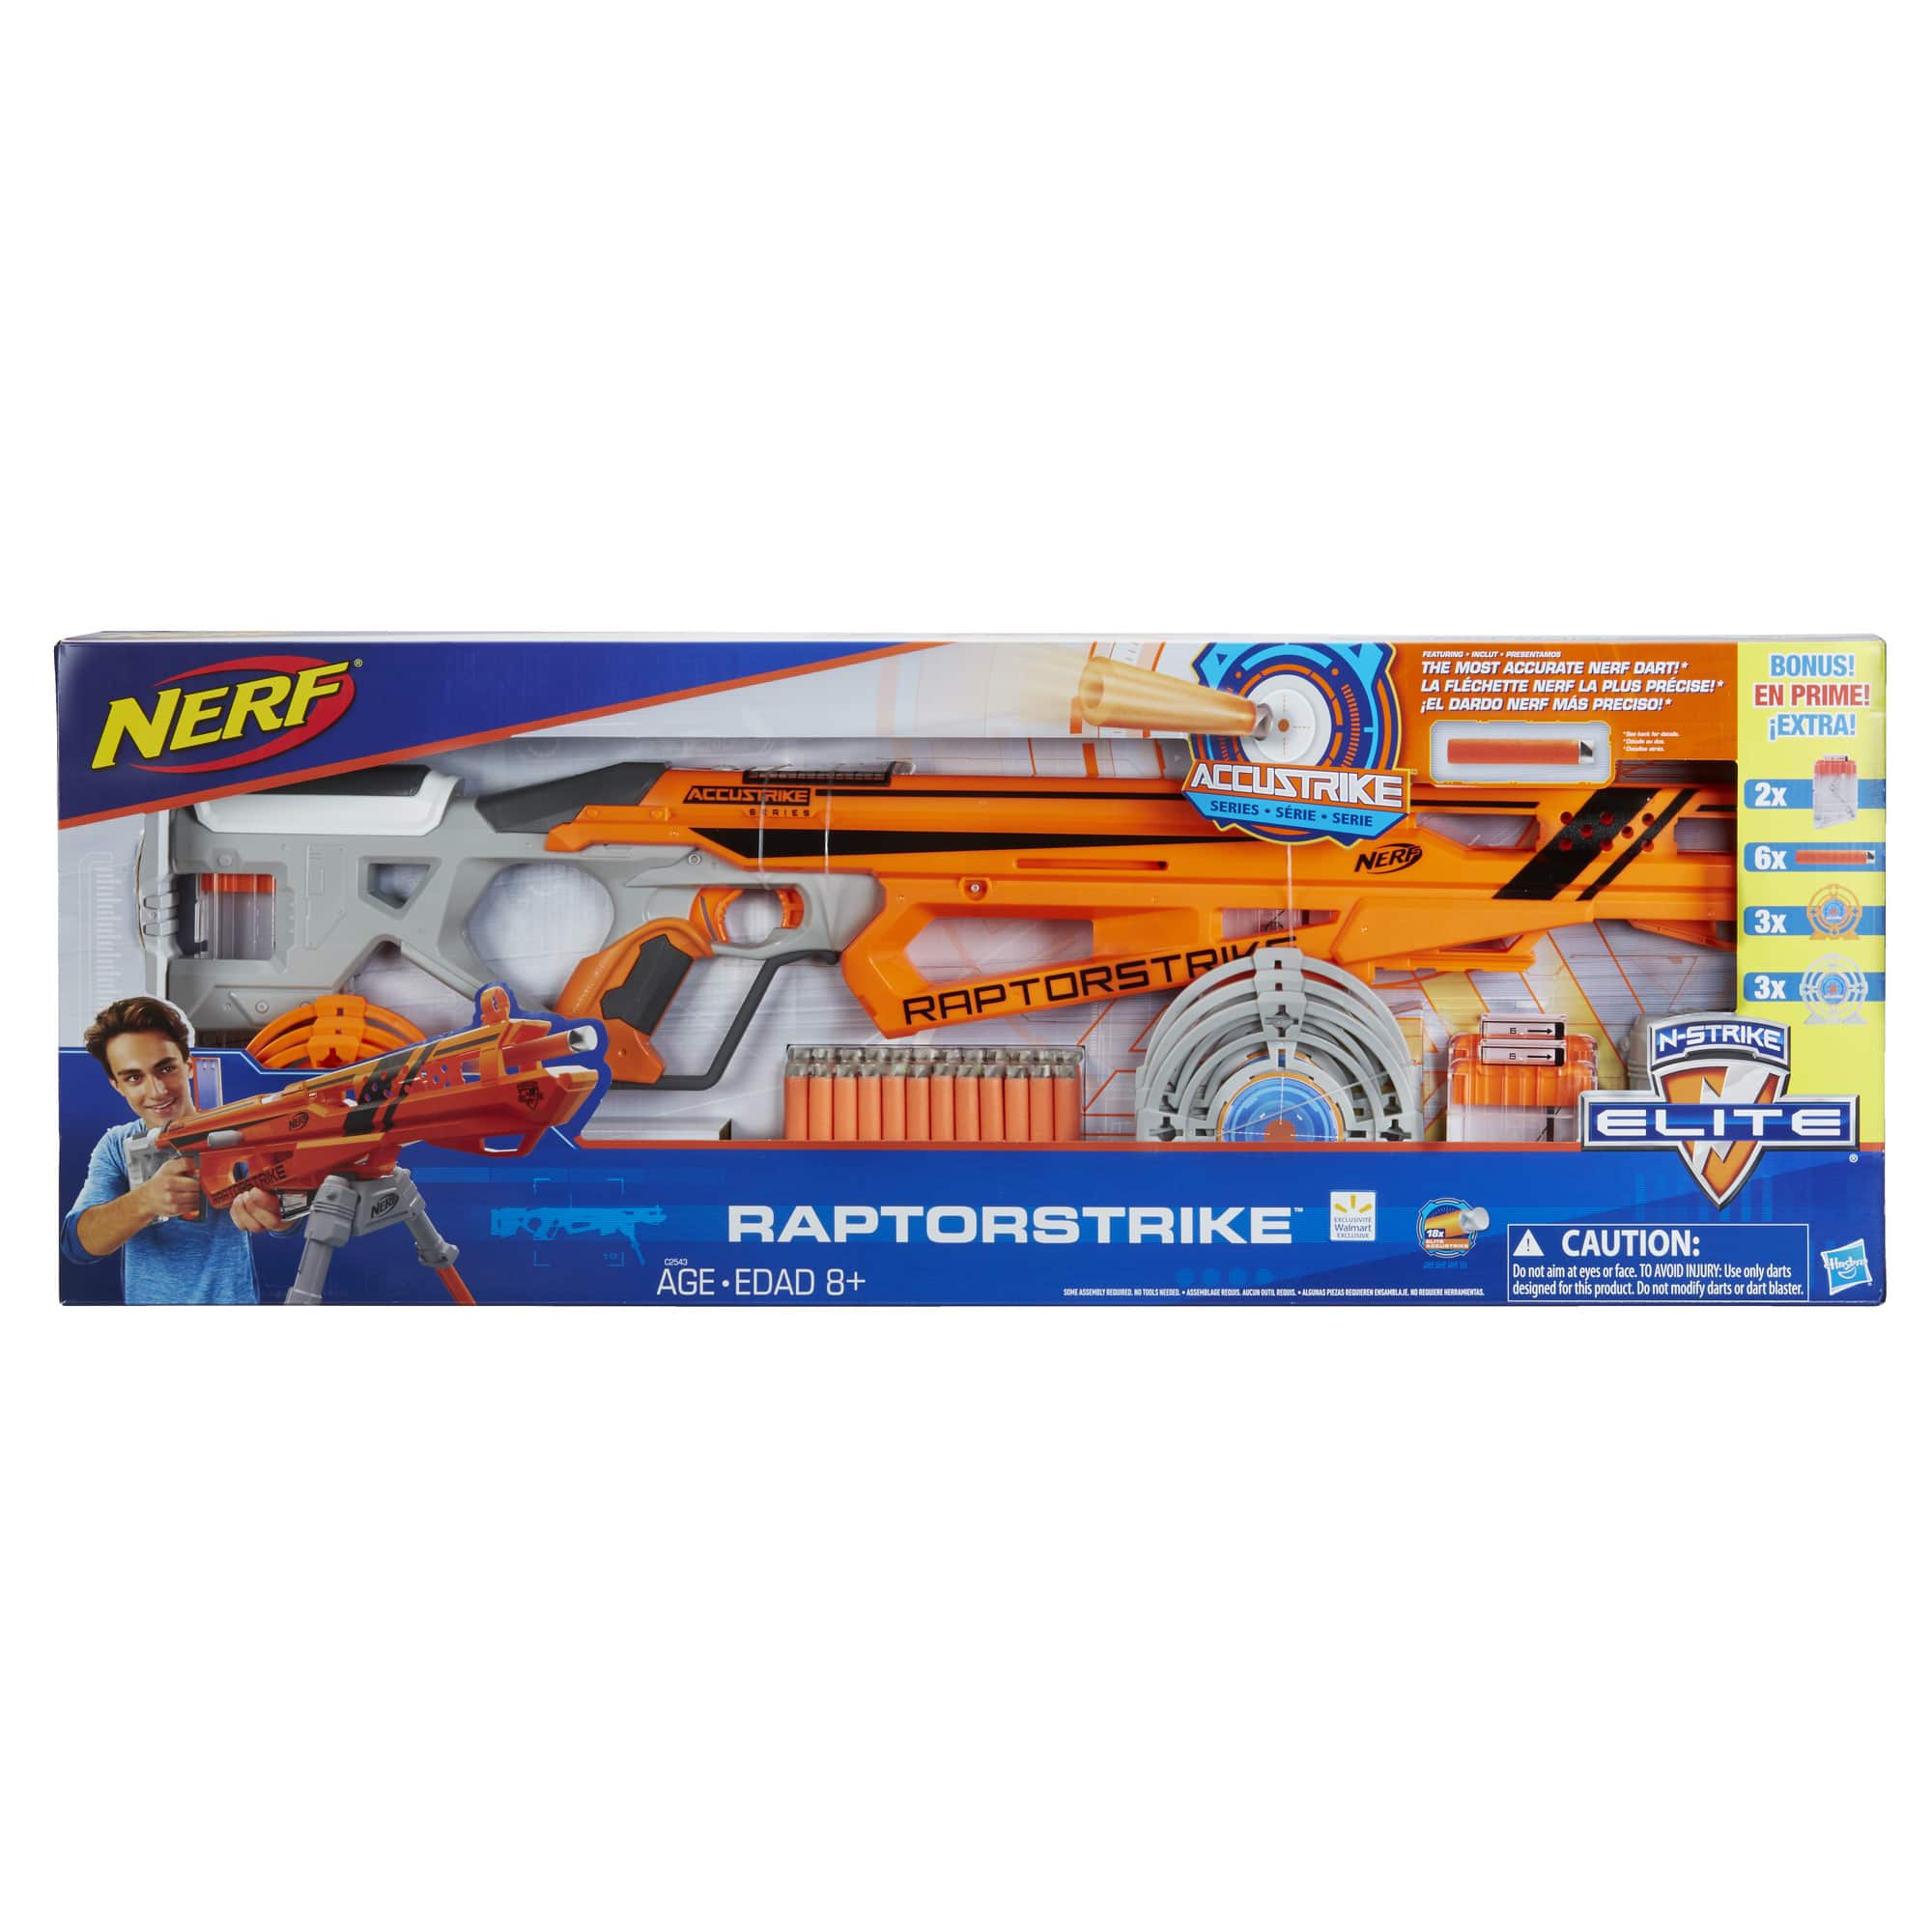 Nerf N-Strike Elite AccuStrike RaptorStrike - Value Pack $30.88